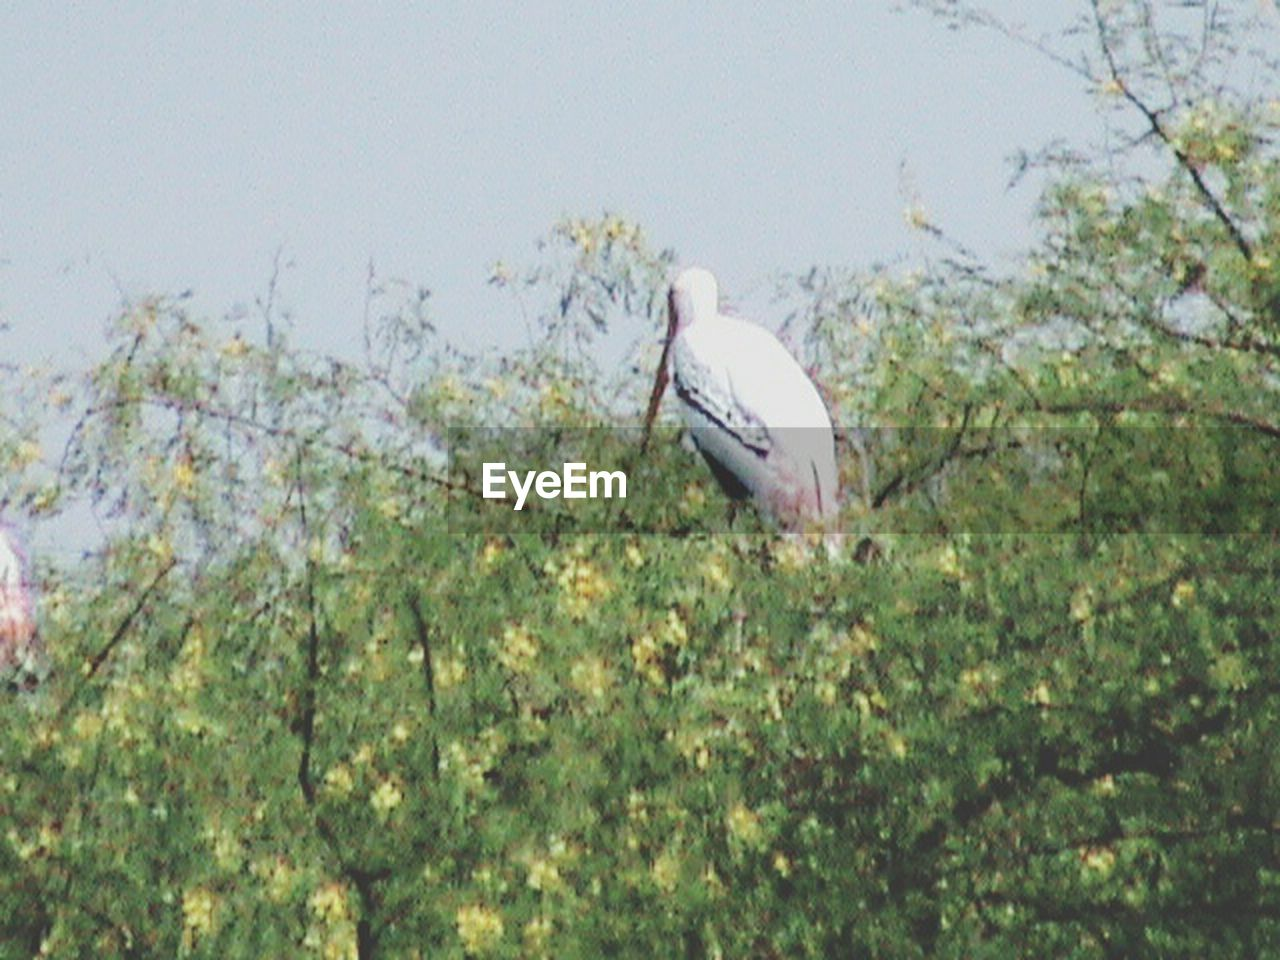 animal themes, one animal, bird, animals in the wild, nature, day, wildlife, animal wildlife, no people, perching, outdoors, stork, plant, tree, great egret, branch, beauty in nature, sky